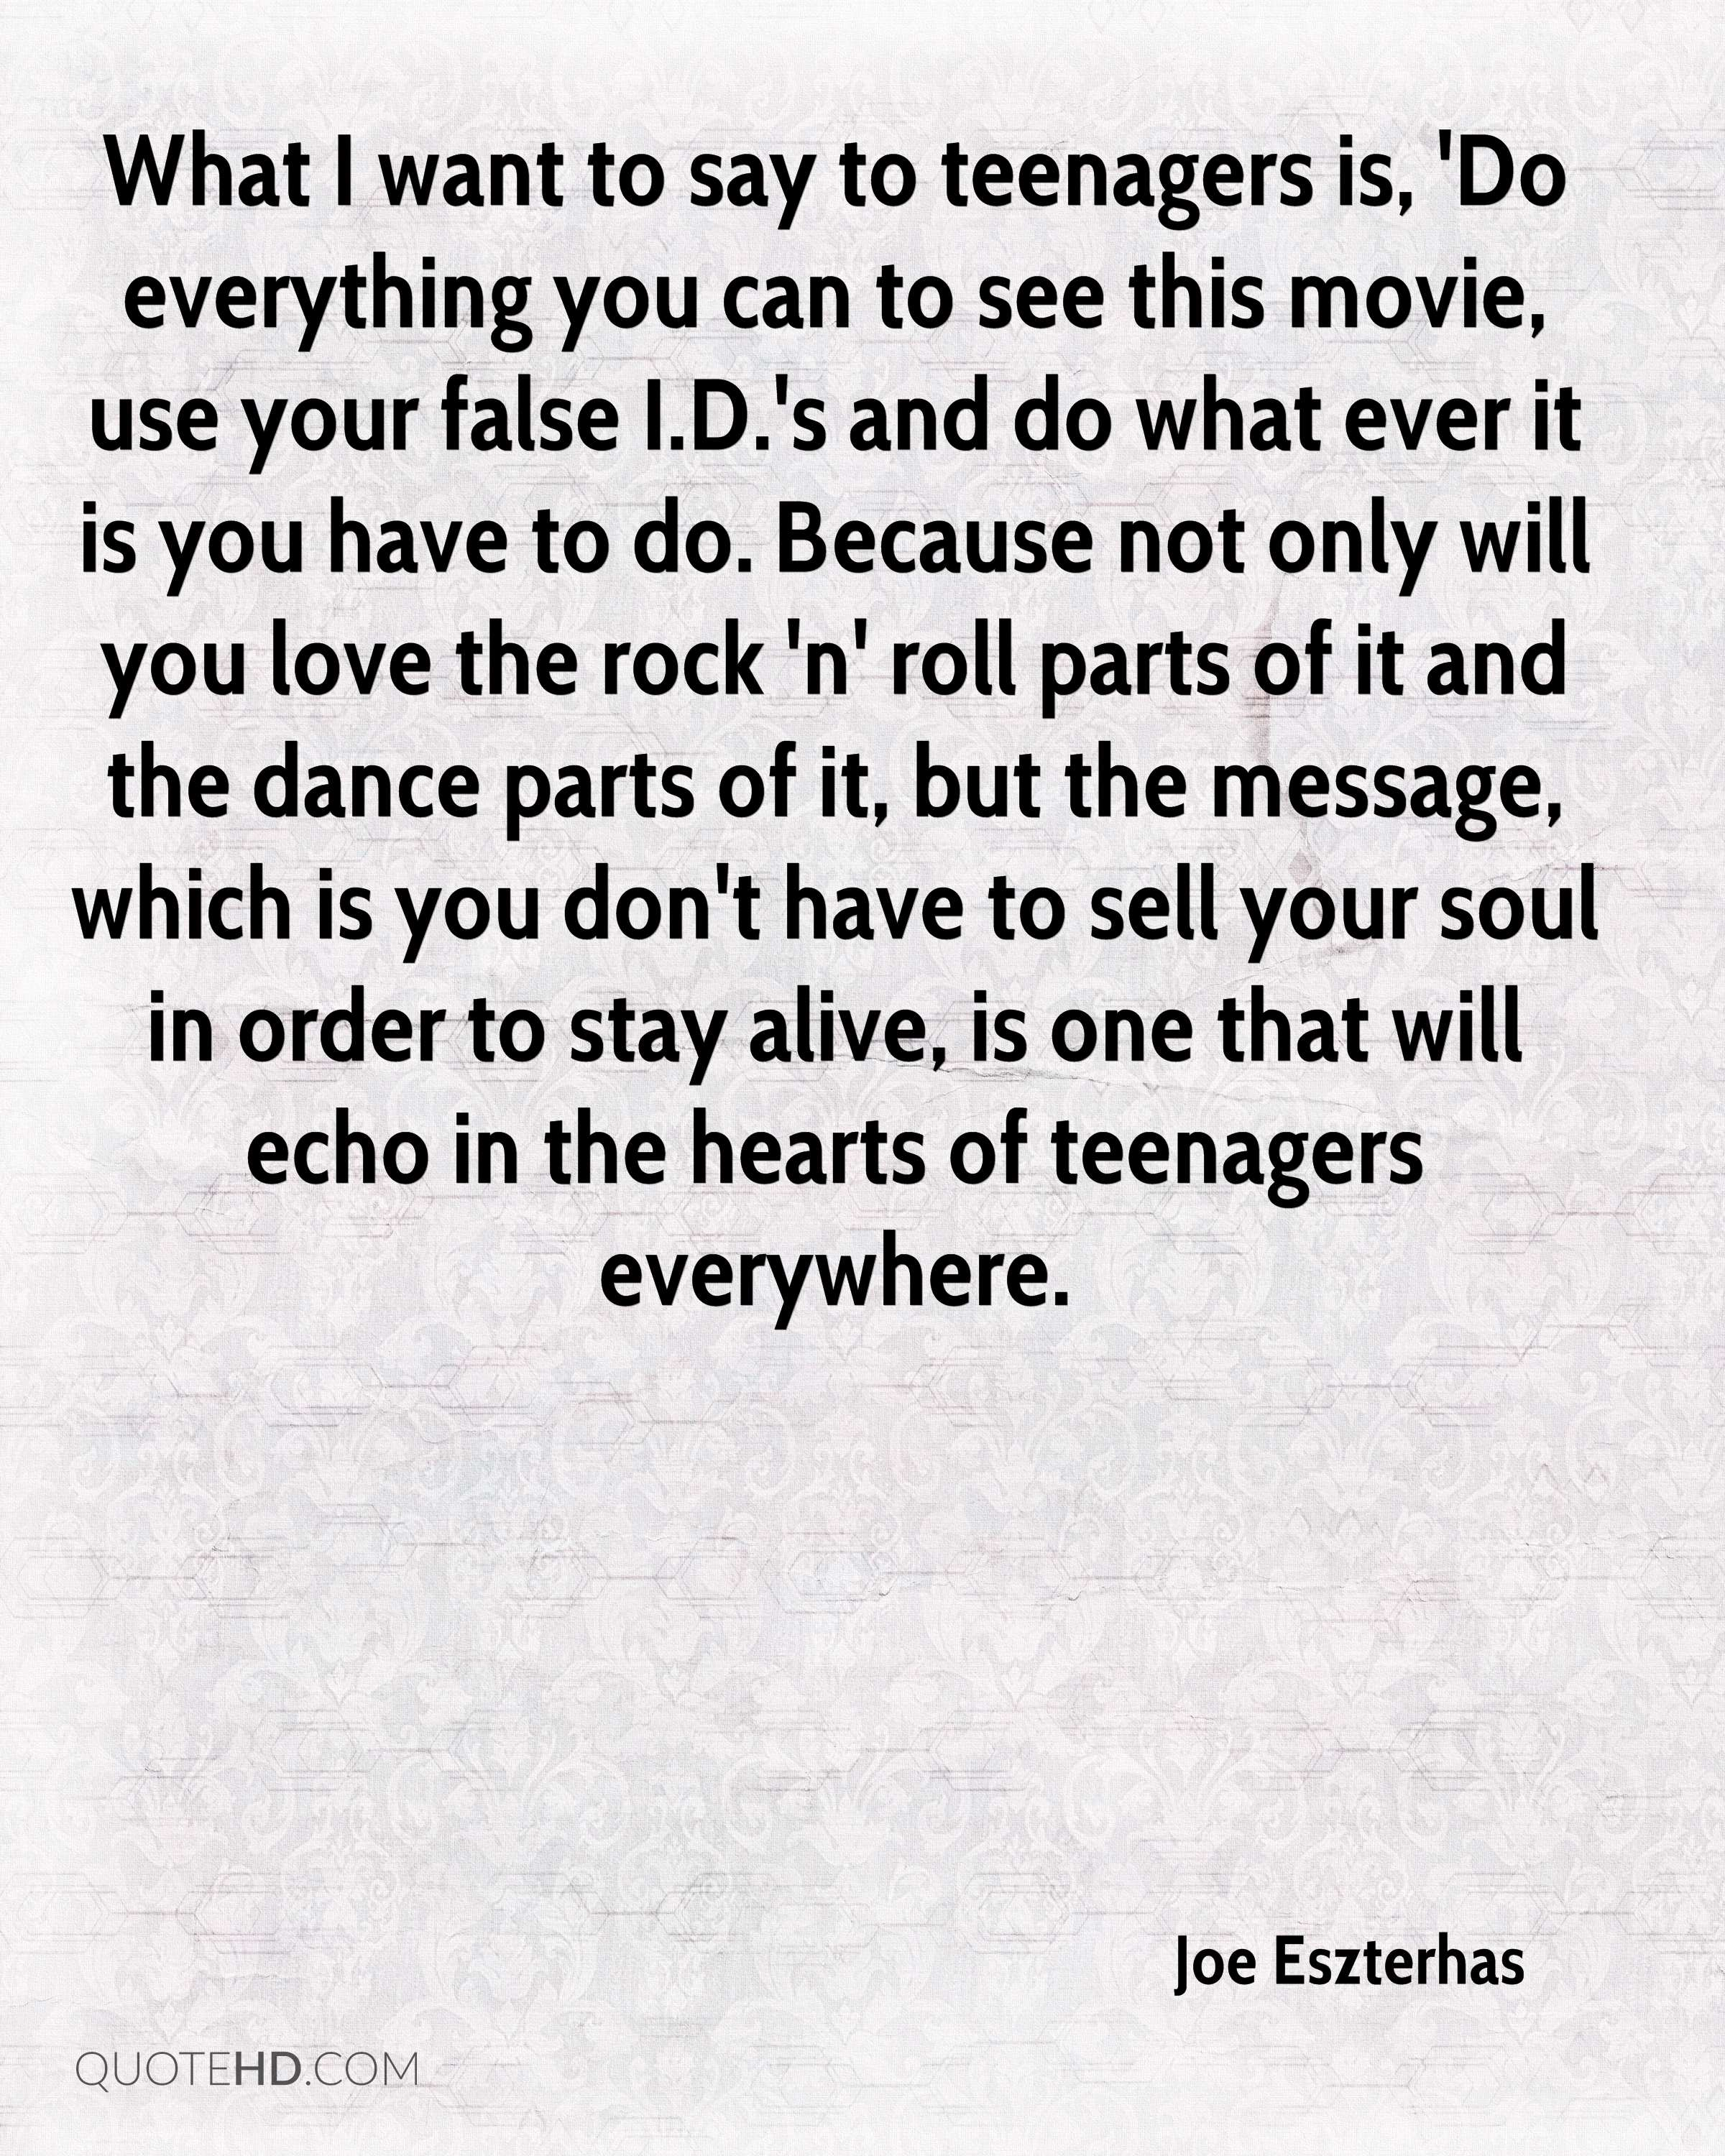 Another movie not quote teen #2